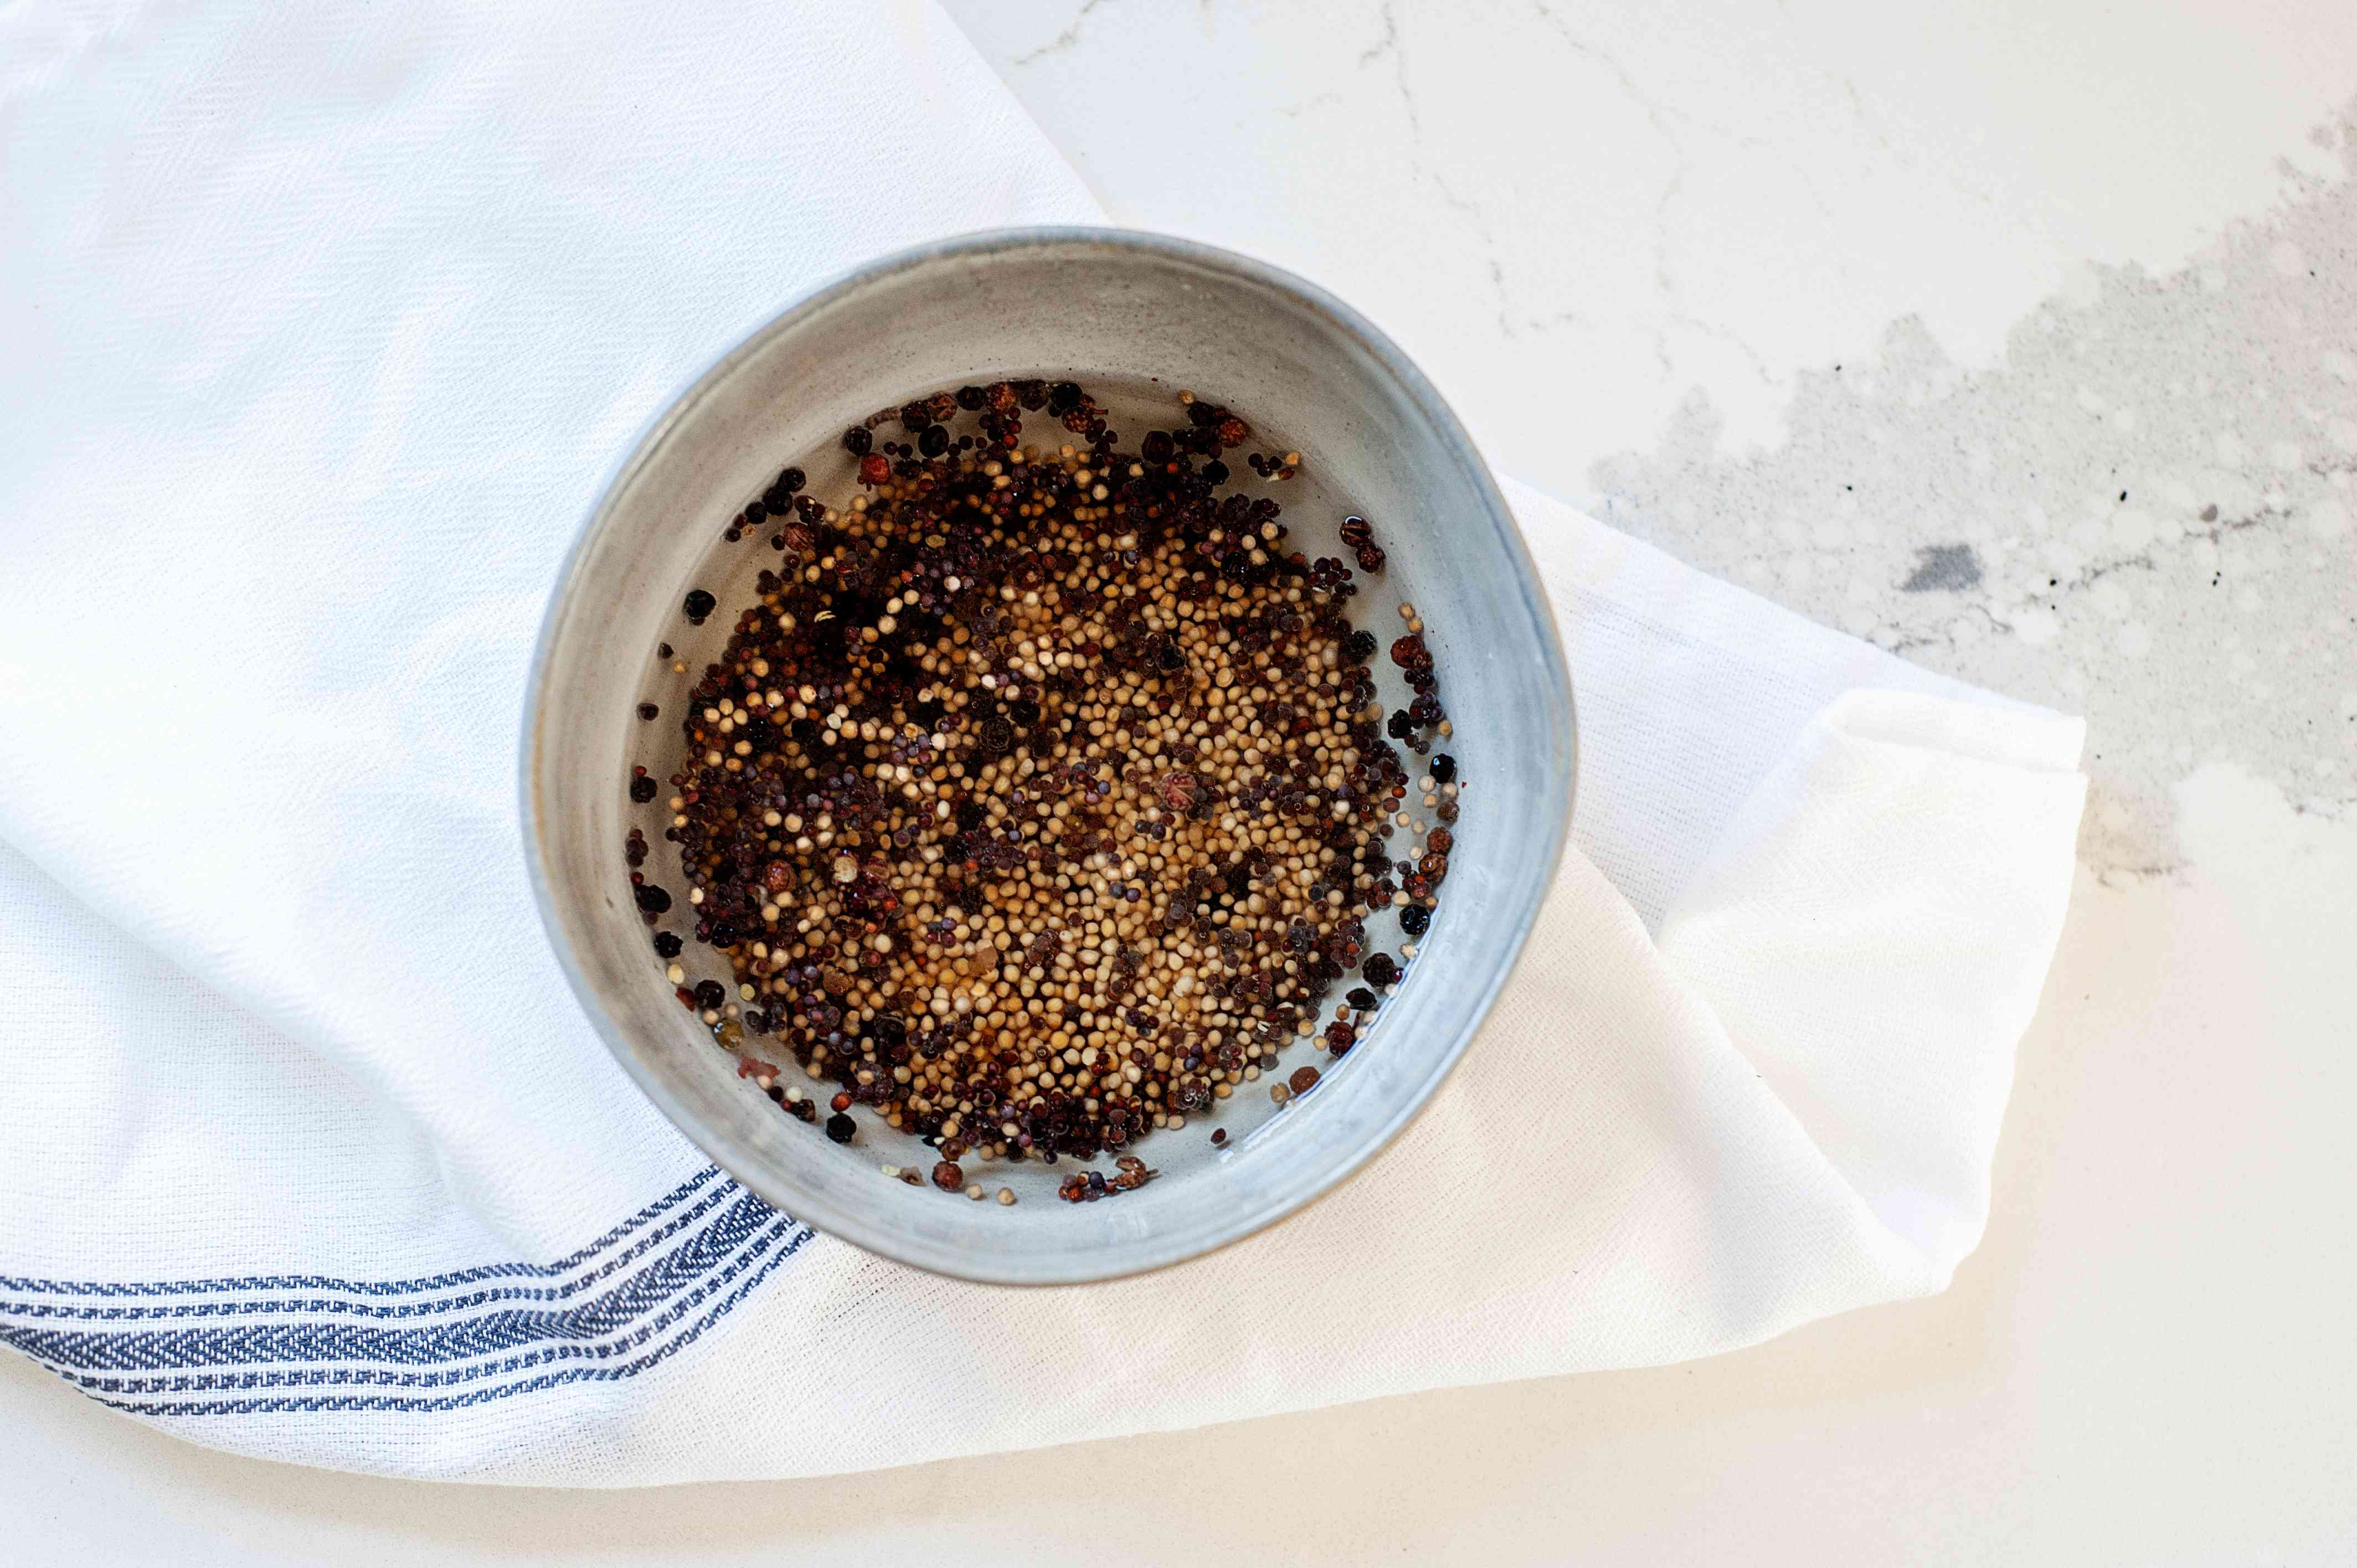 Mustard seeds in a small bowl to make a honey mustard recipe